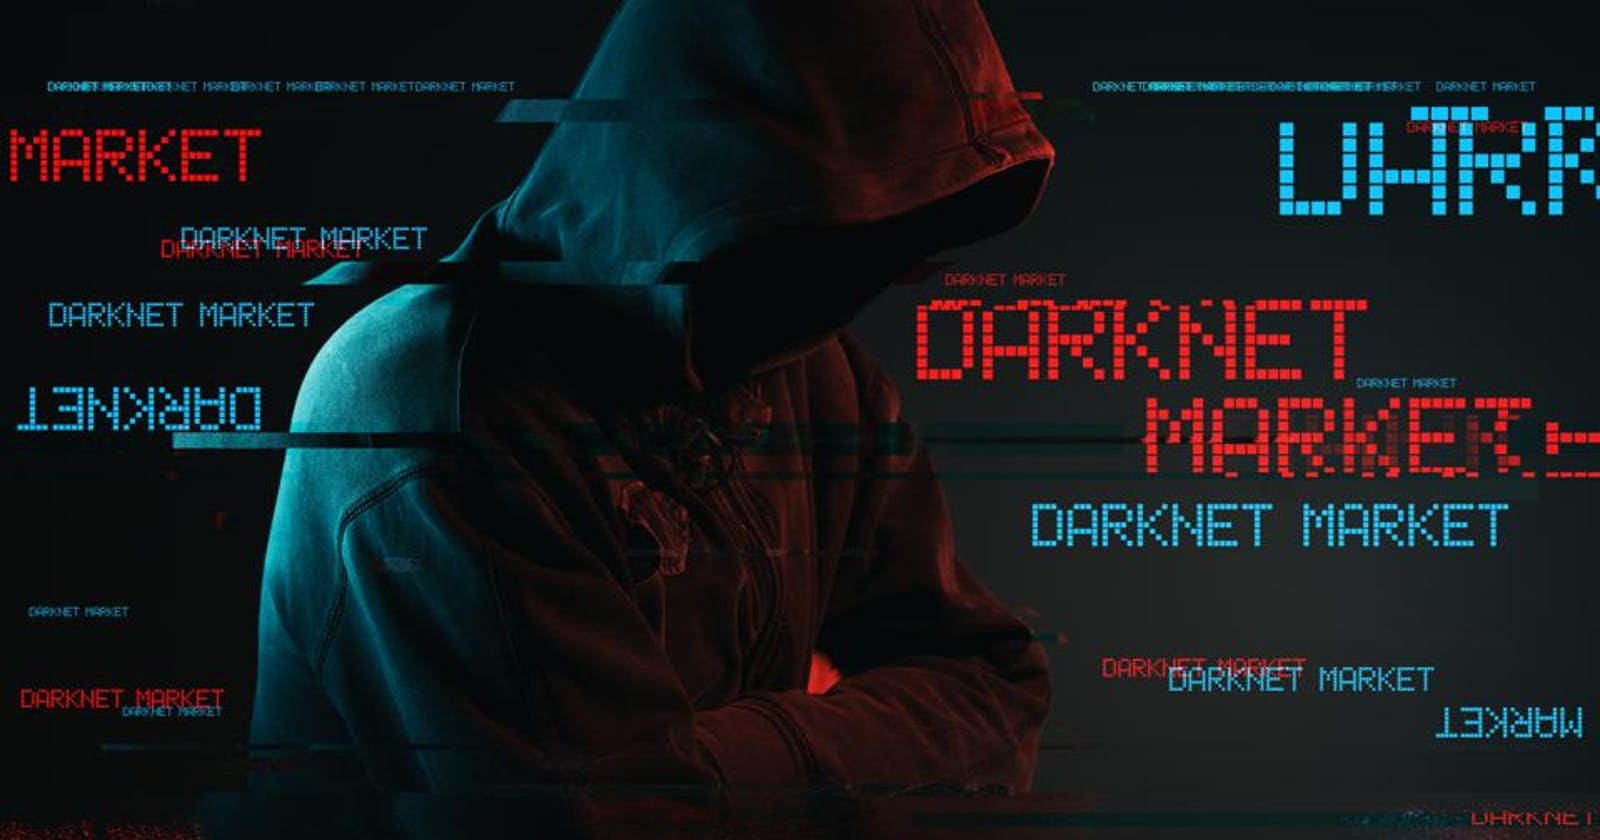 I hosted a mirror of this blog on the dark web. Here's how